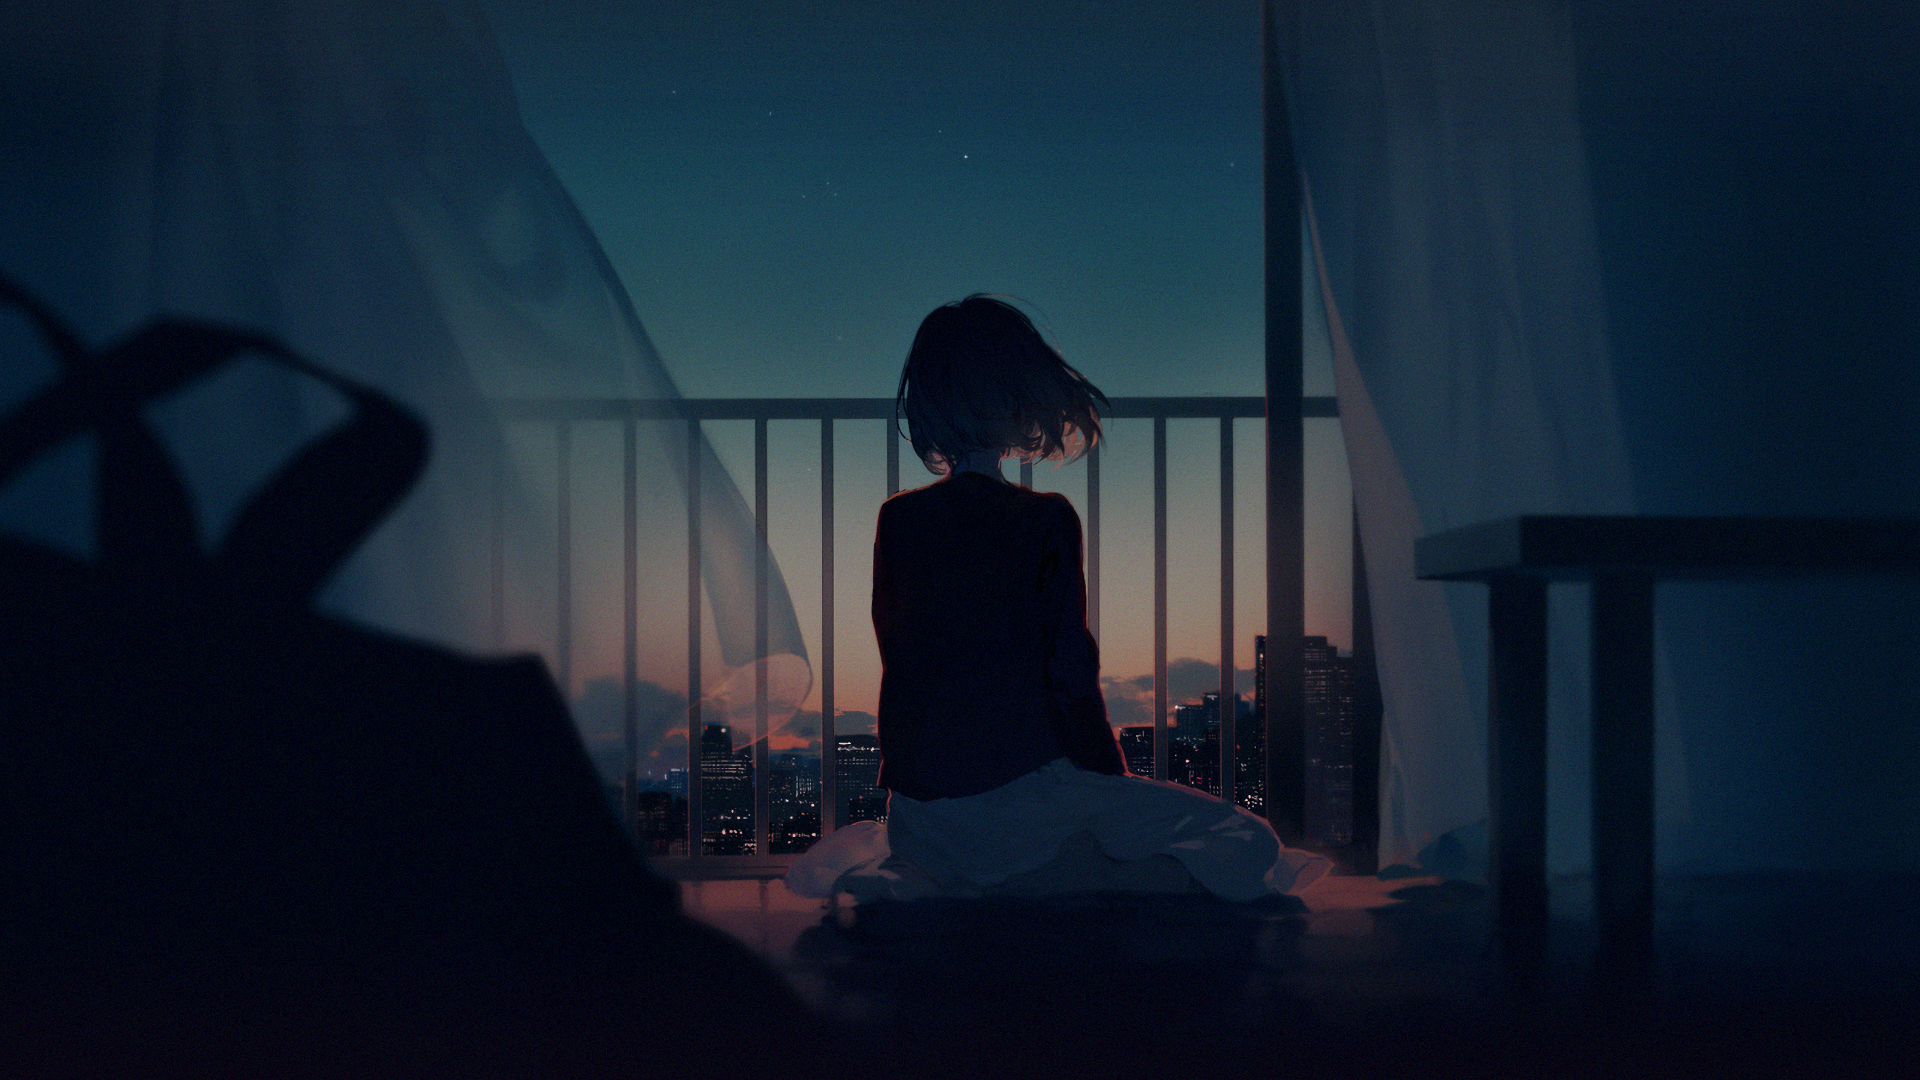 Anime Wallpaper 1920x1080 Digital Art Artwork Women Cityscape Balcony Short Hair Barefoot Anime Gi Anime Wallpaper 1920x1080 Alone Girl Anime Background